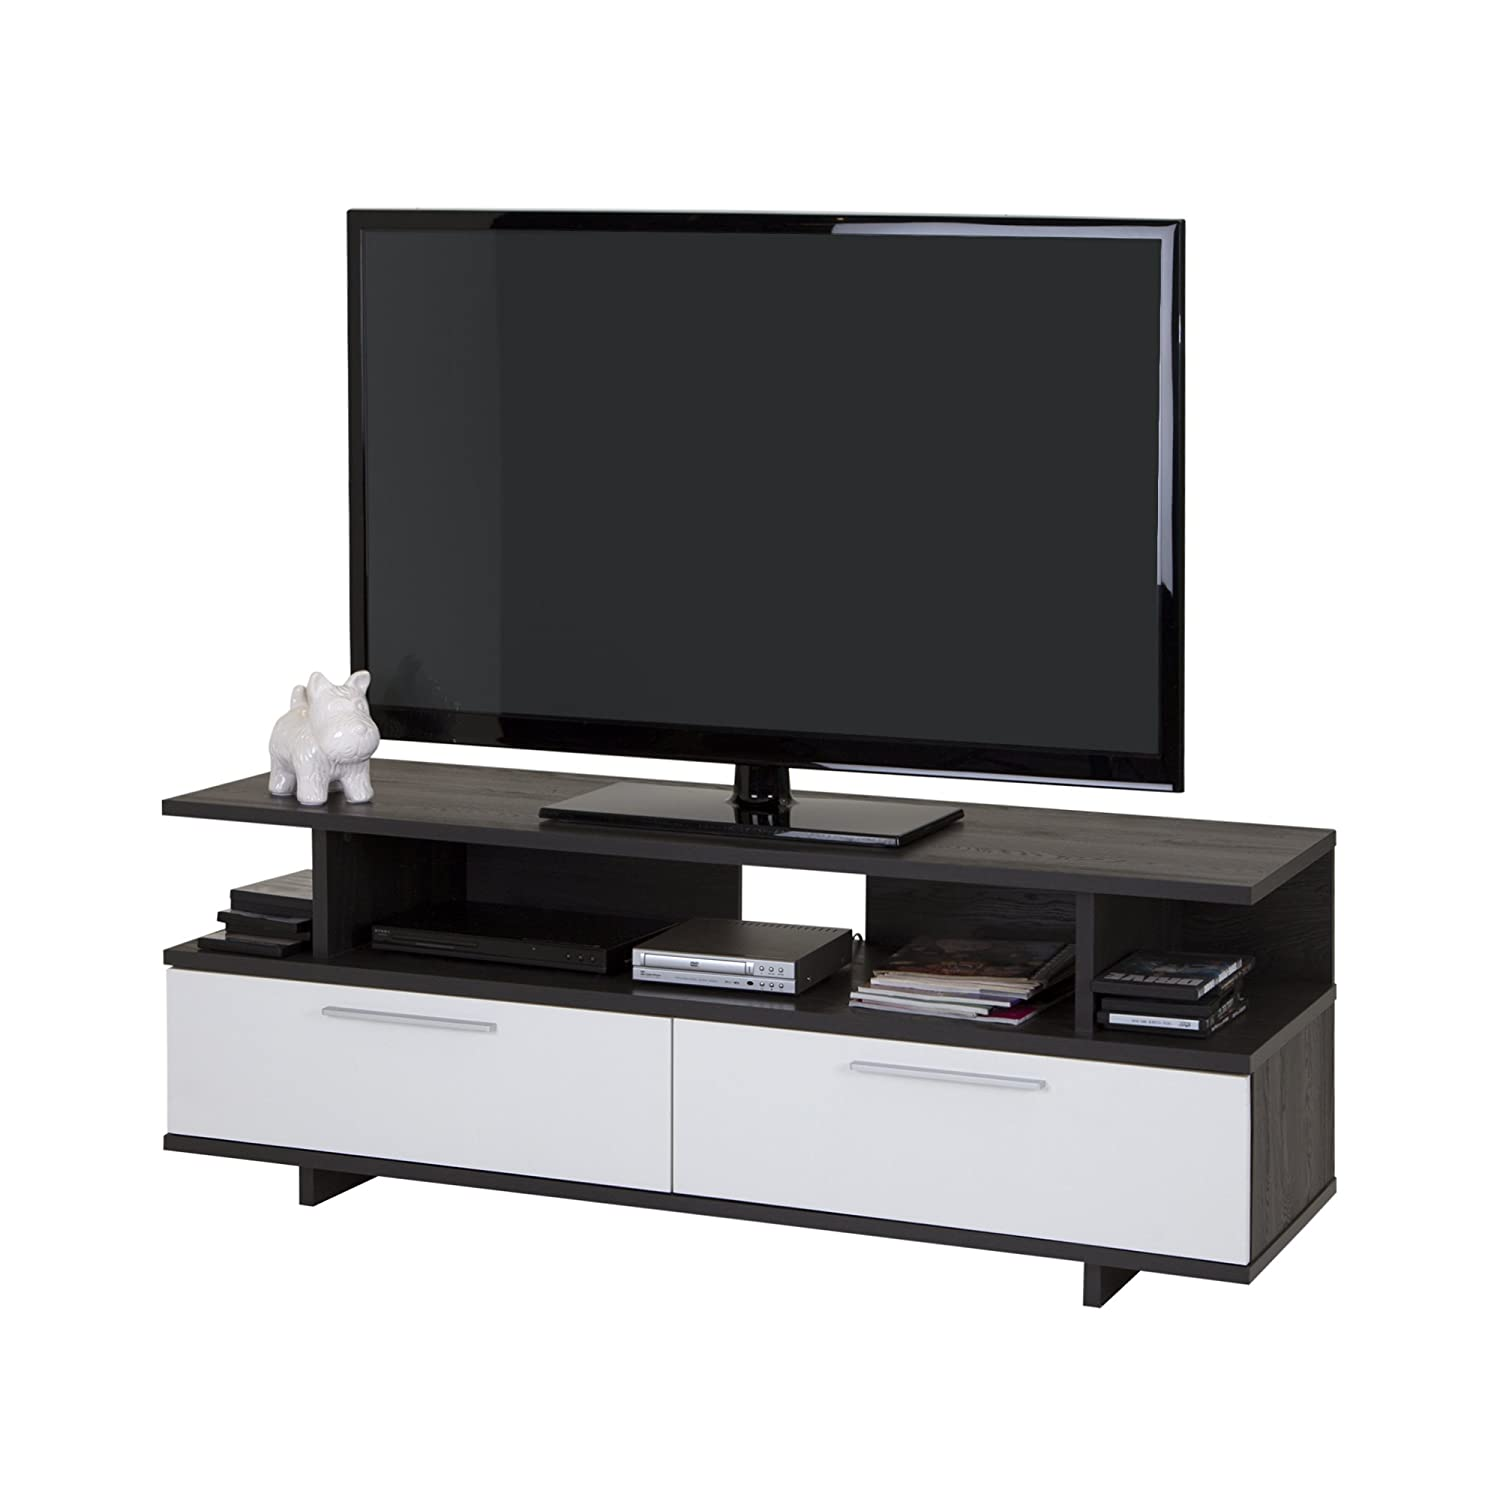 South Shore Furniture Reflekt Collection, TV Stand, Gray, Oak 4337677